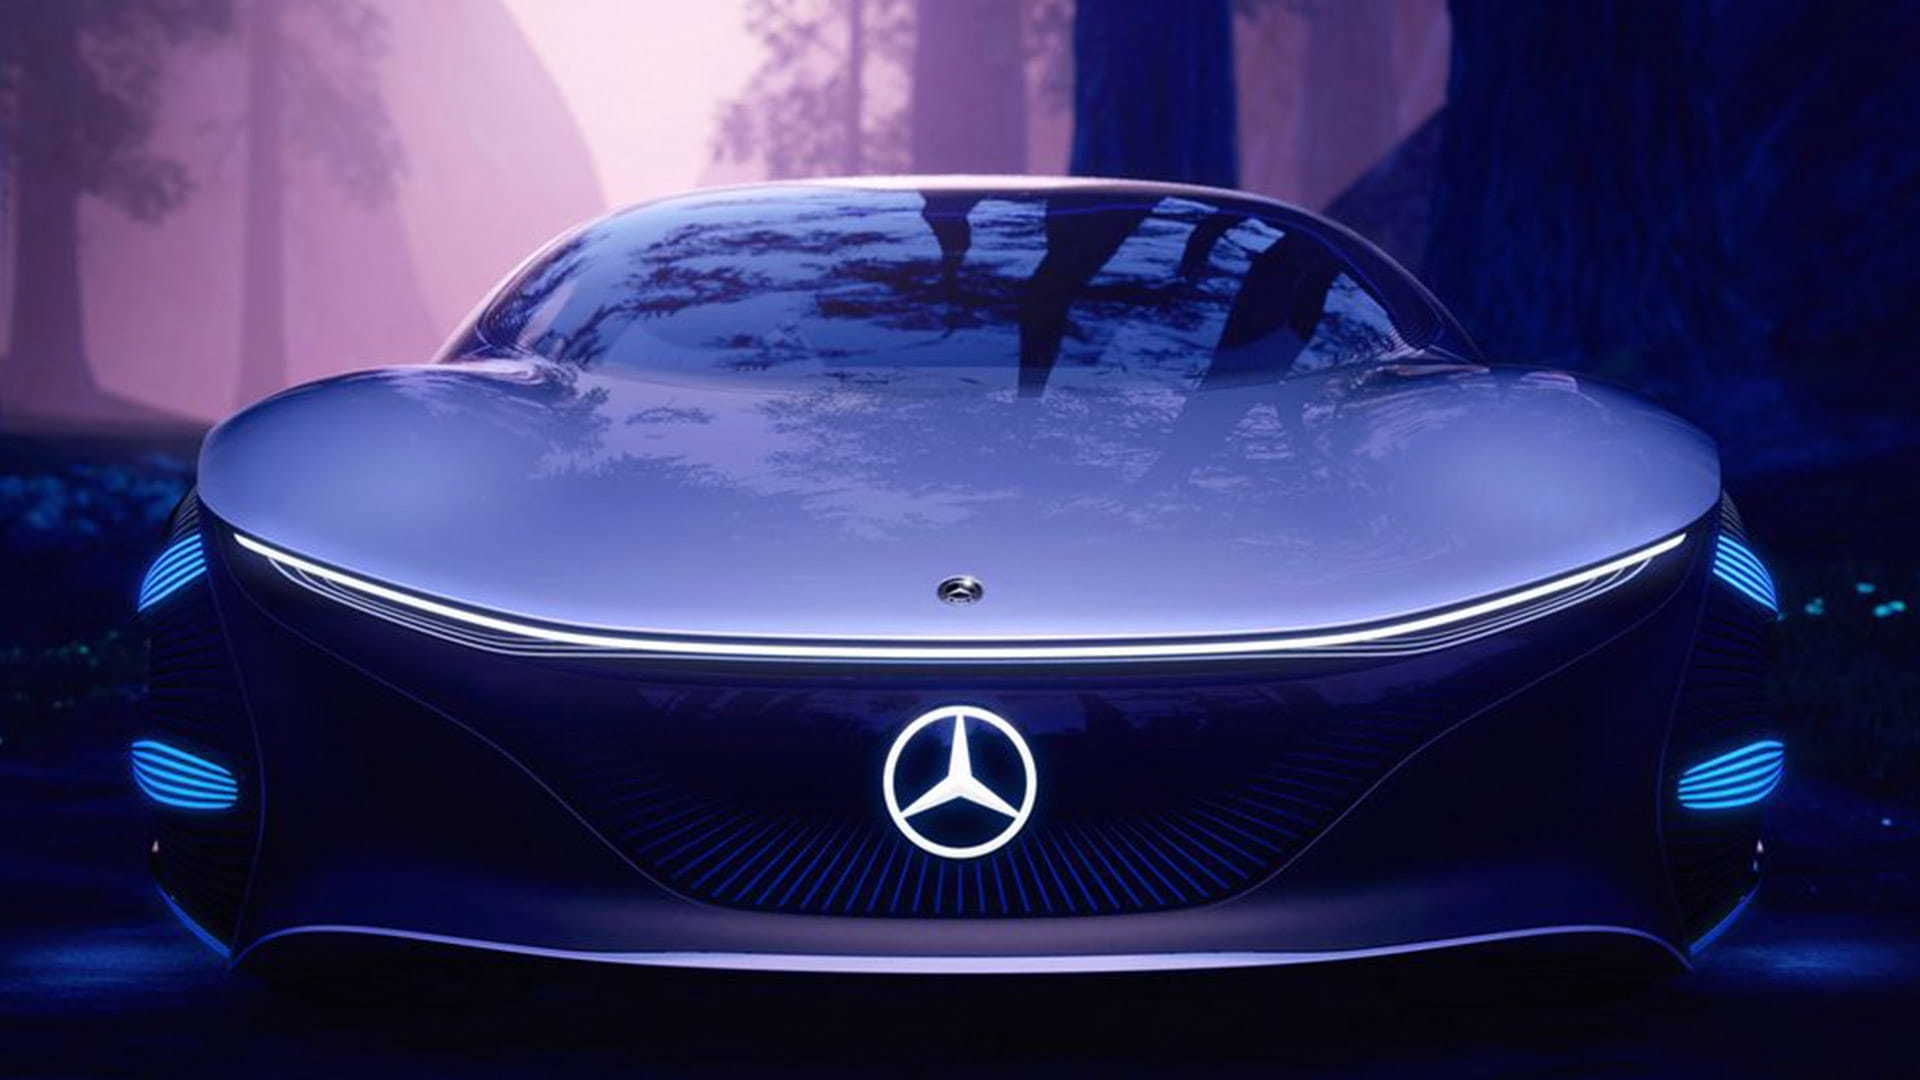 A close-up of the front of the VISION AVTR concept car.